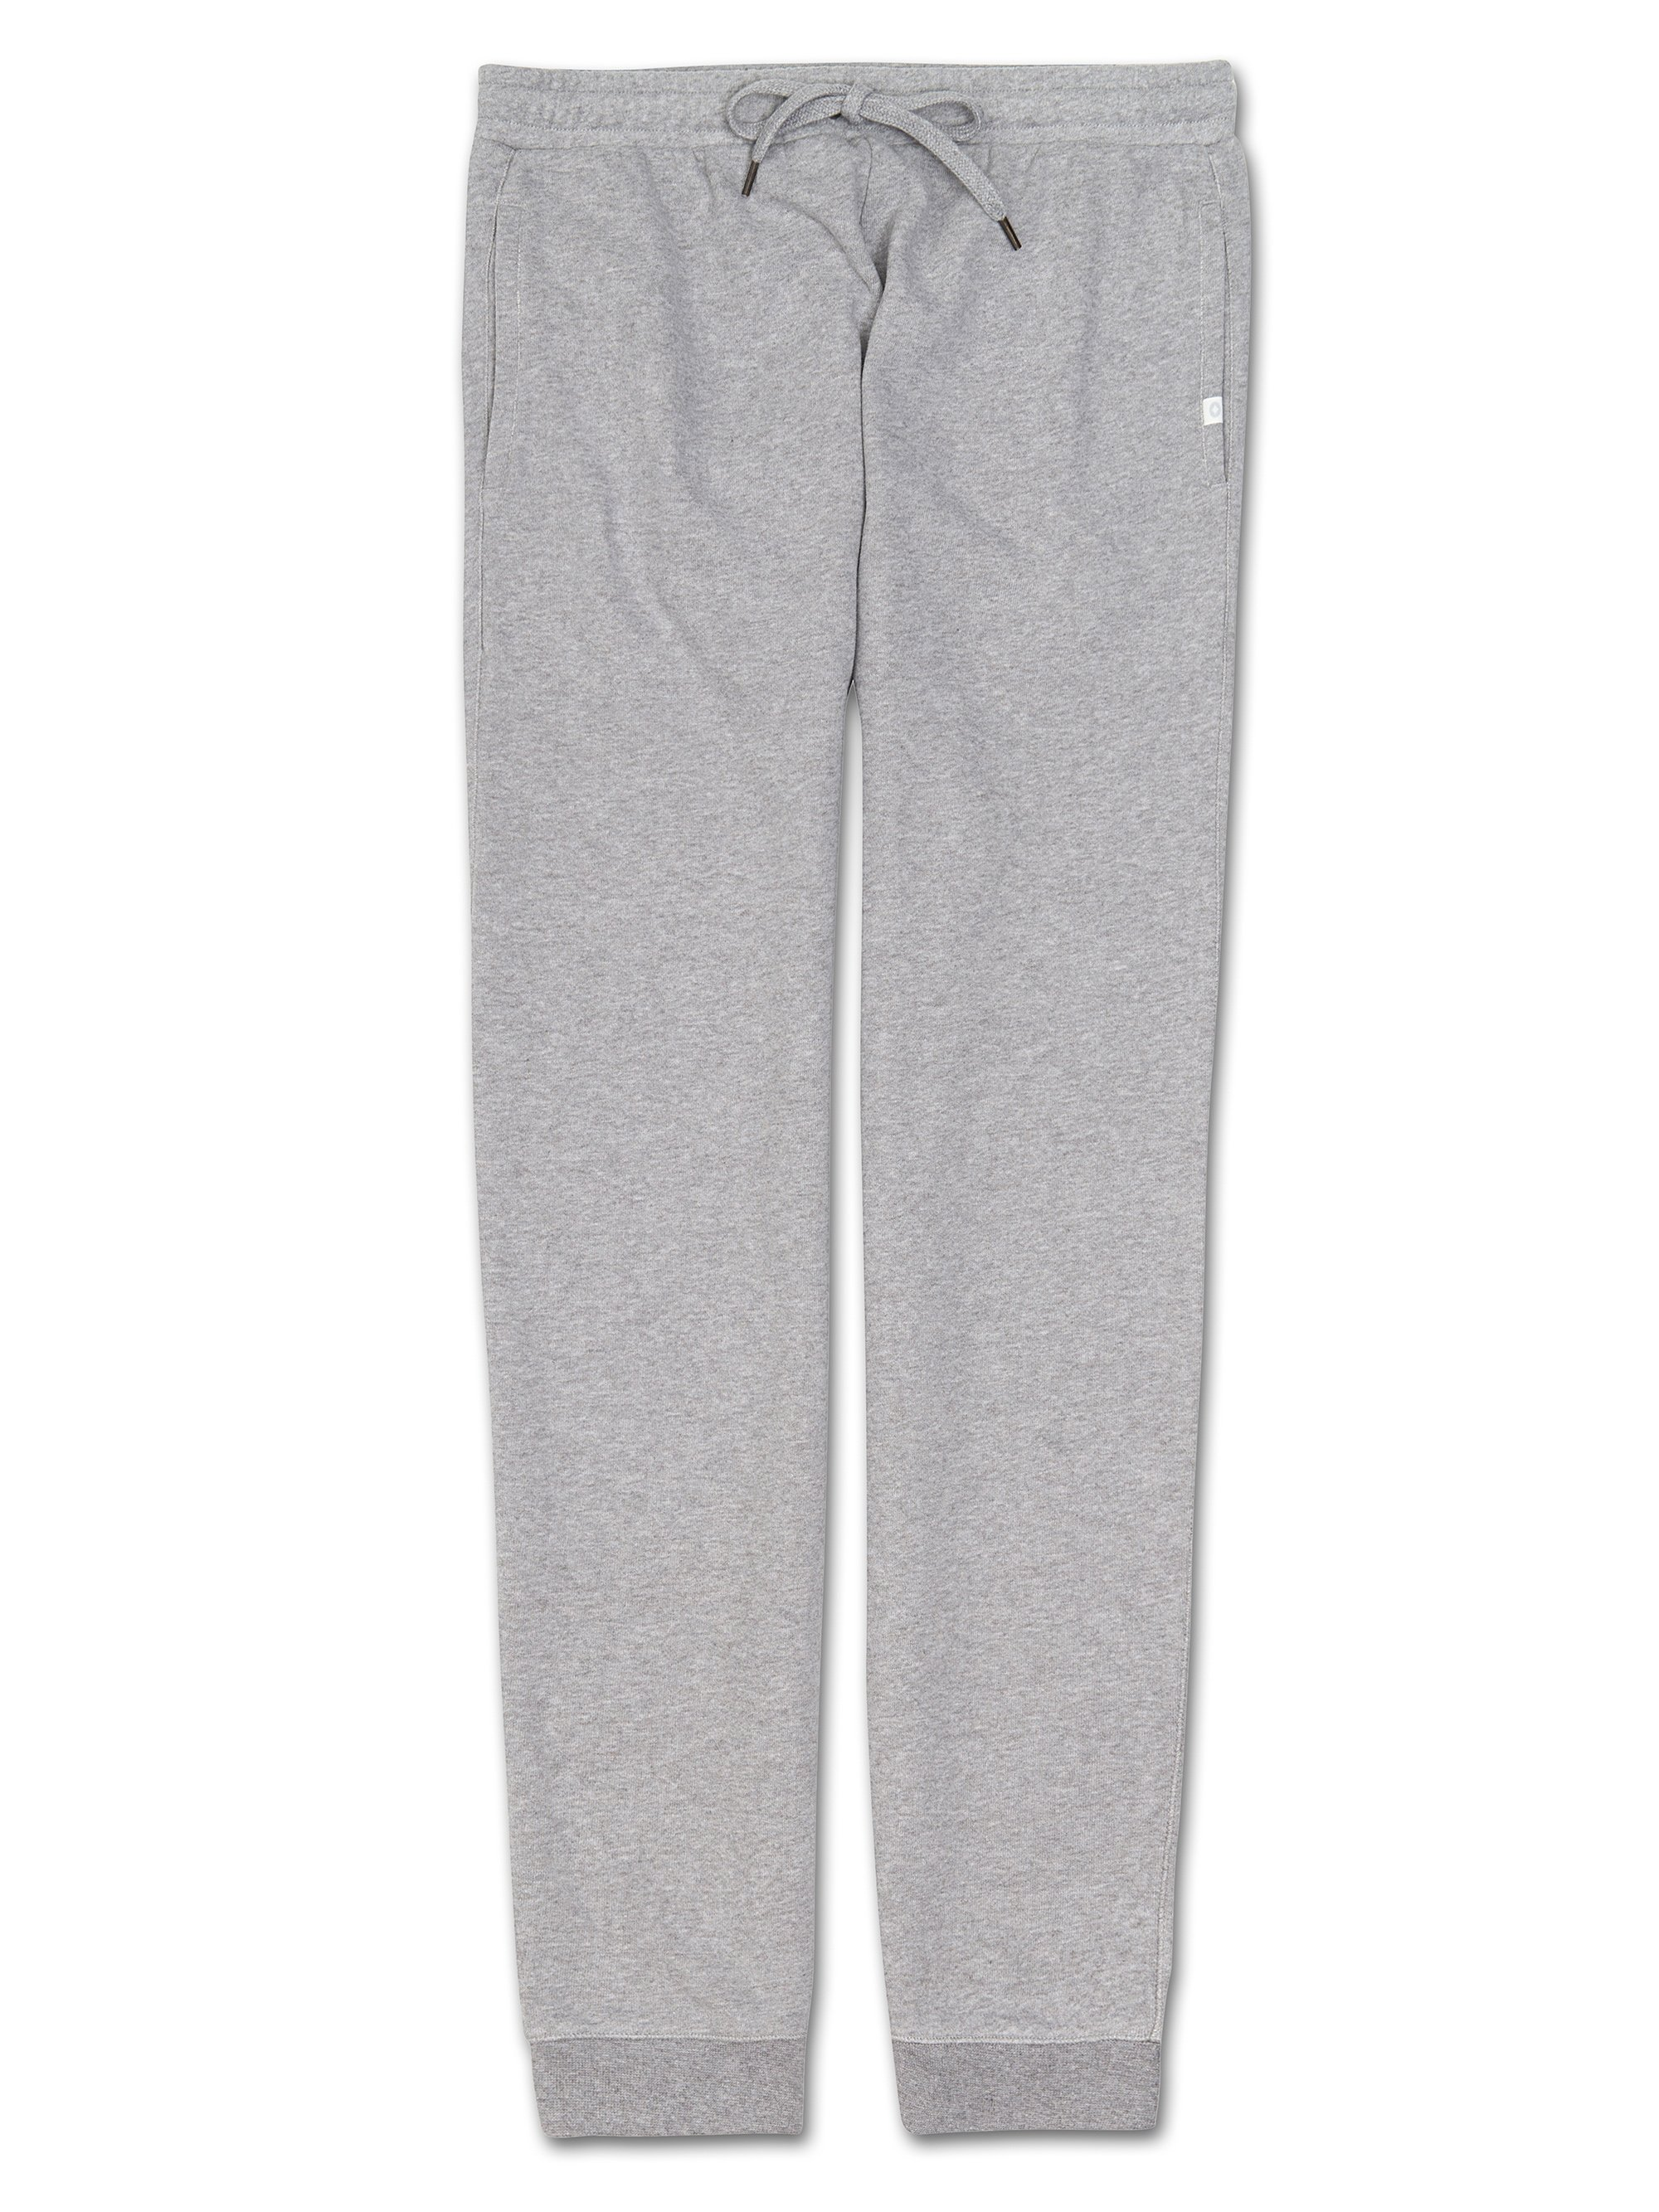 Men's Sweatpants Devon Loopback Cotton Silver